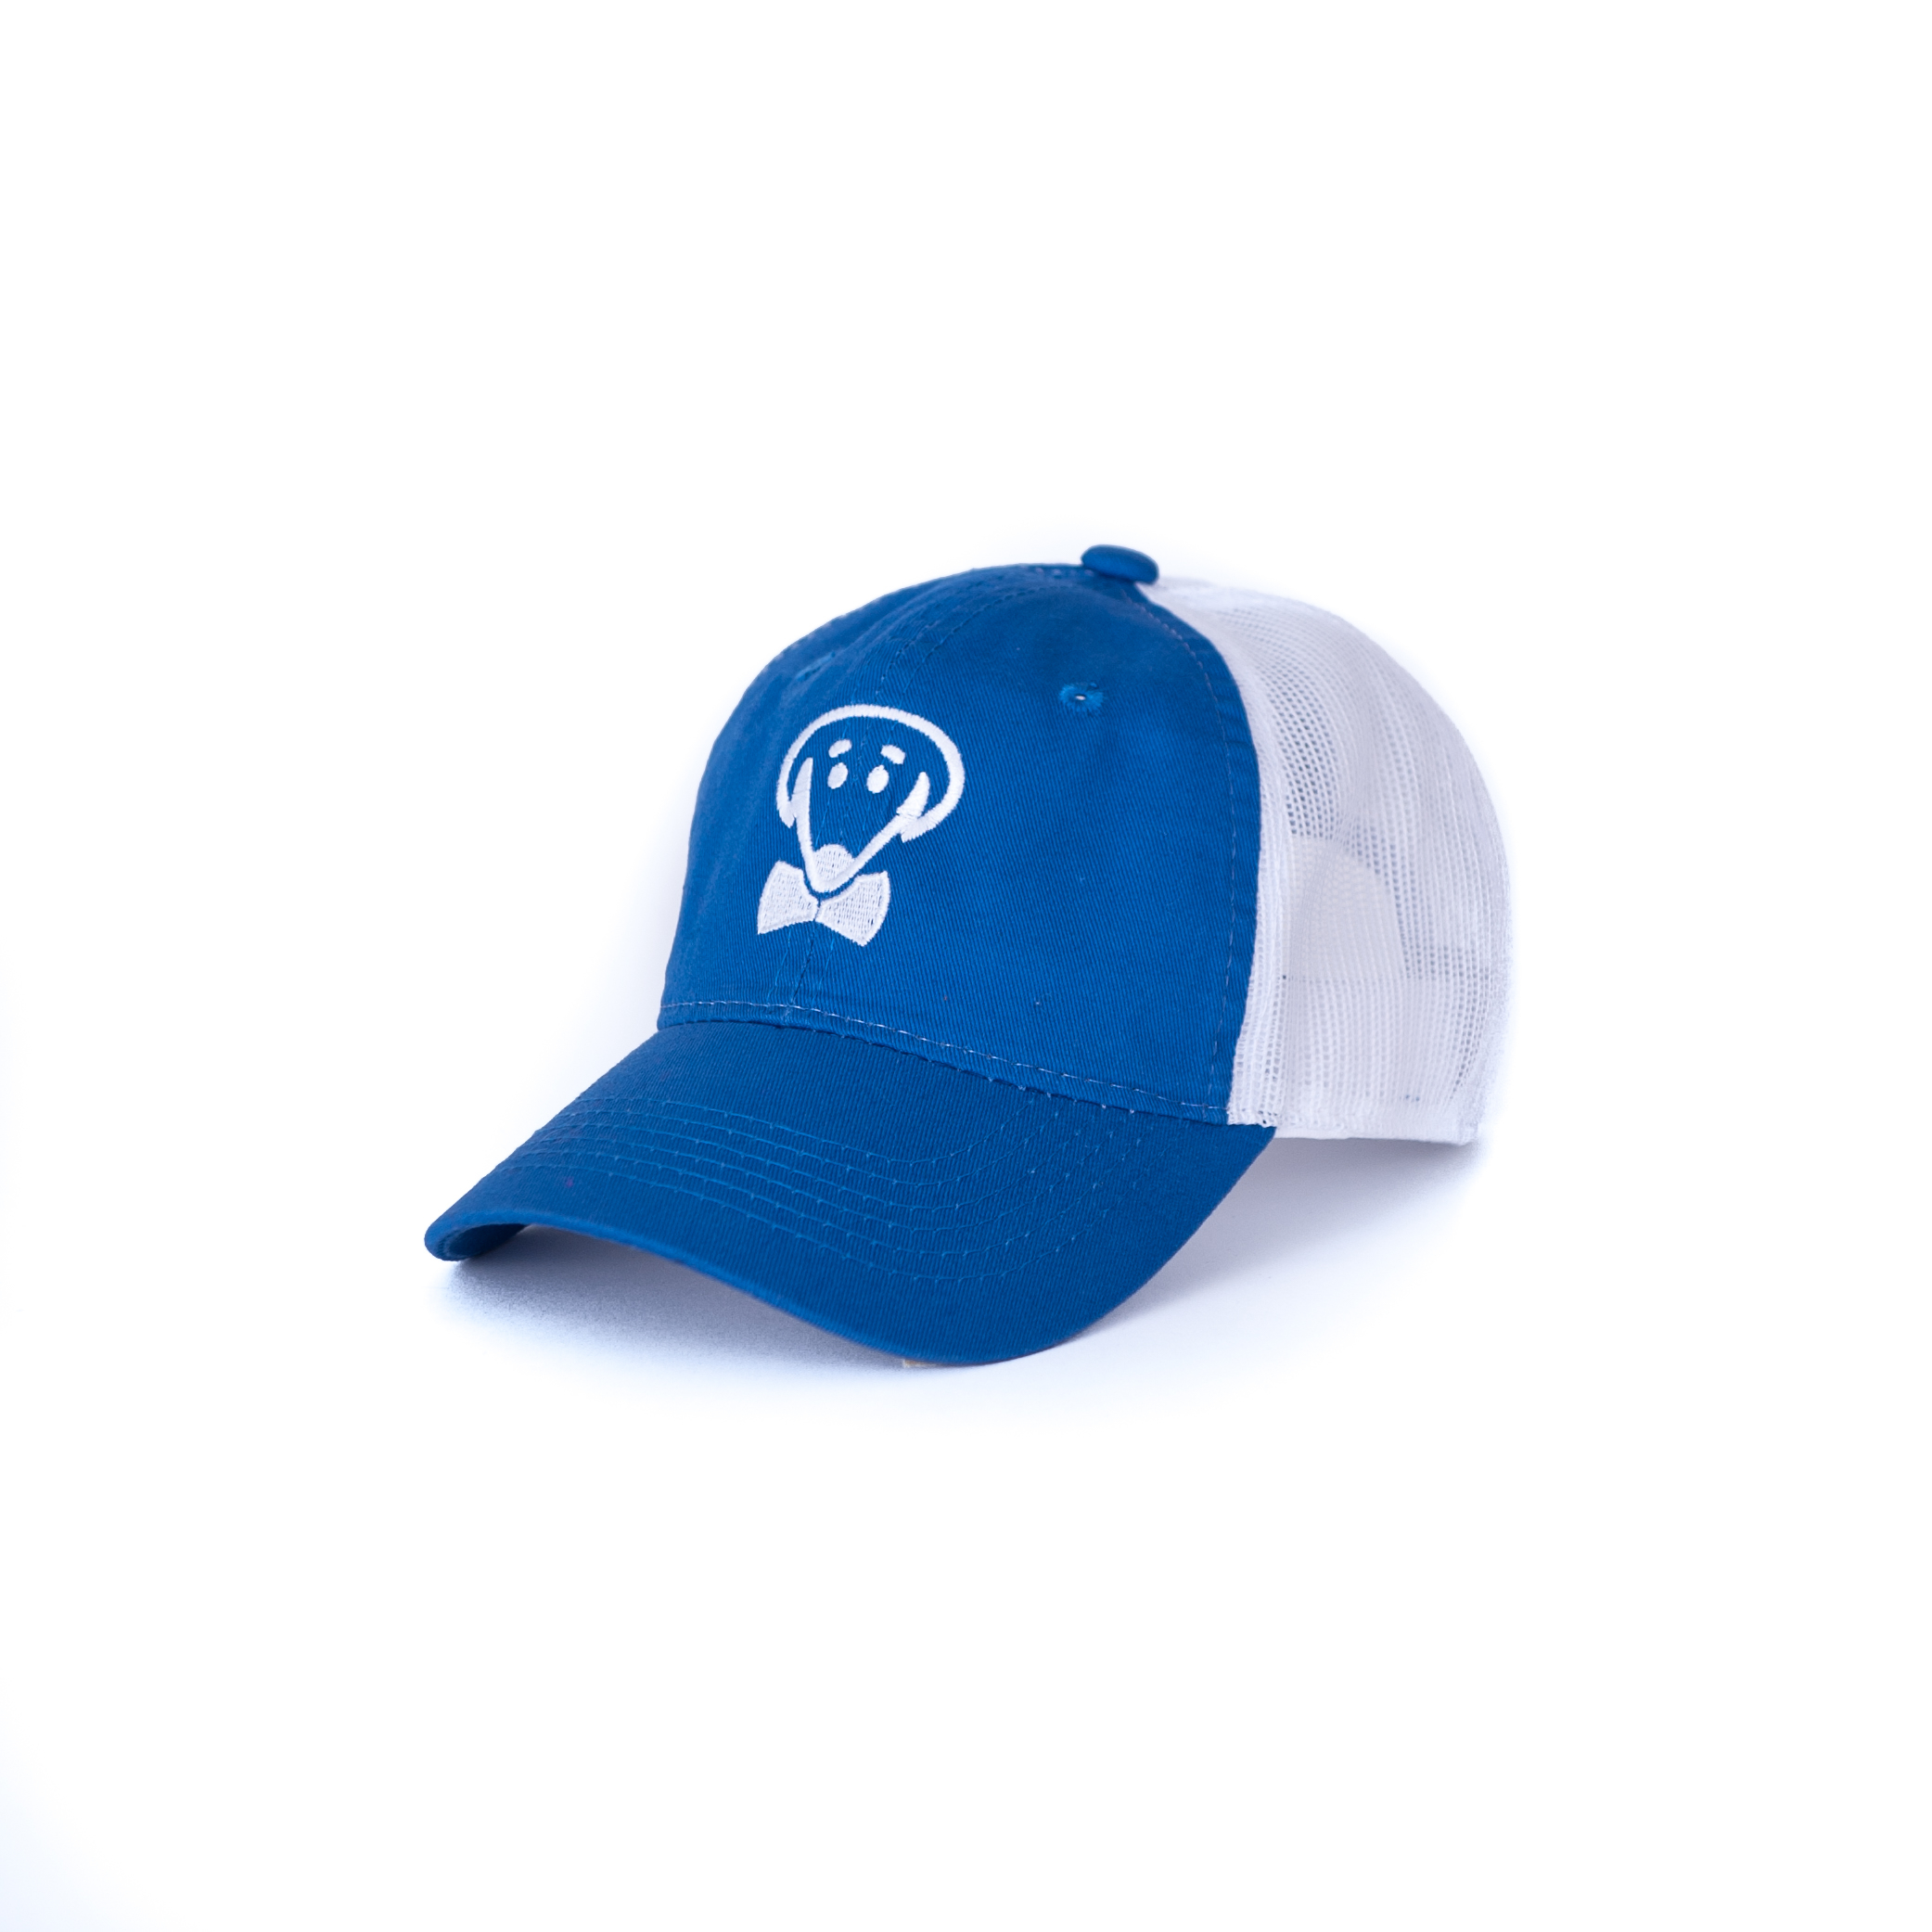 Bow Ties Dog Logo Baseball Hat-Royal Blue and White